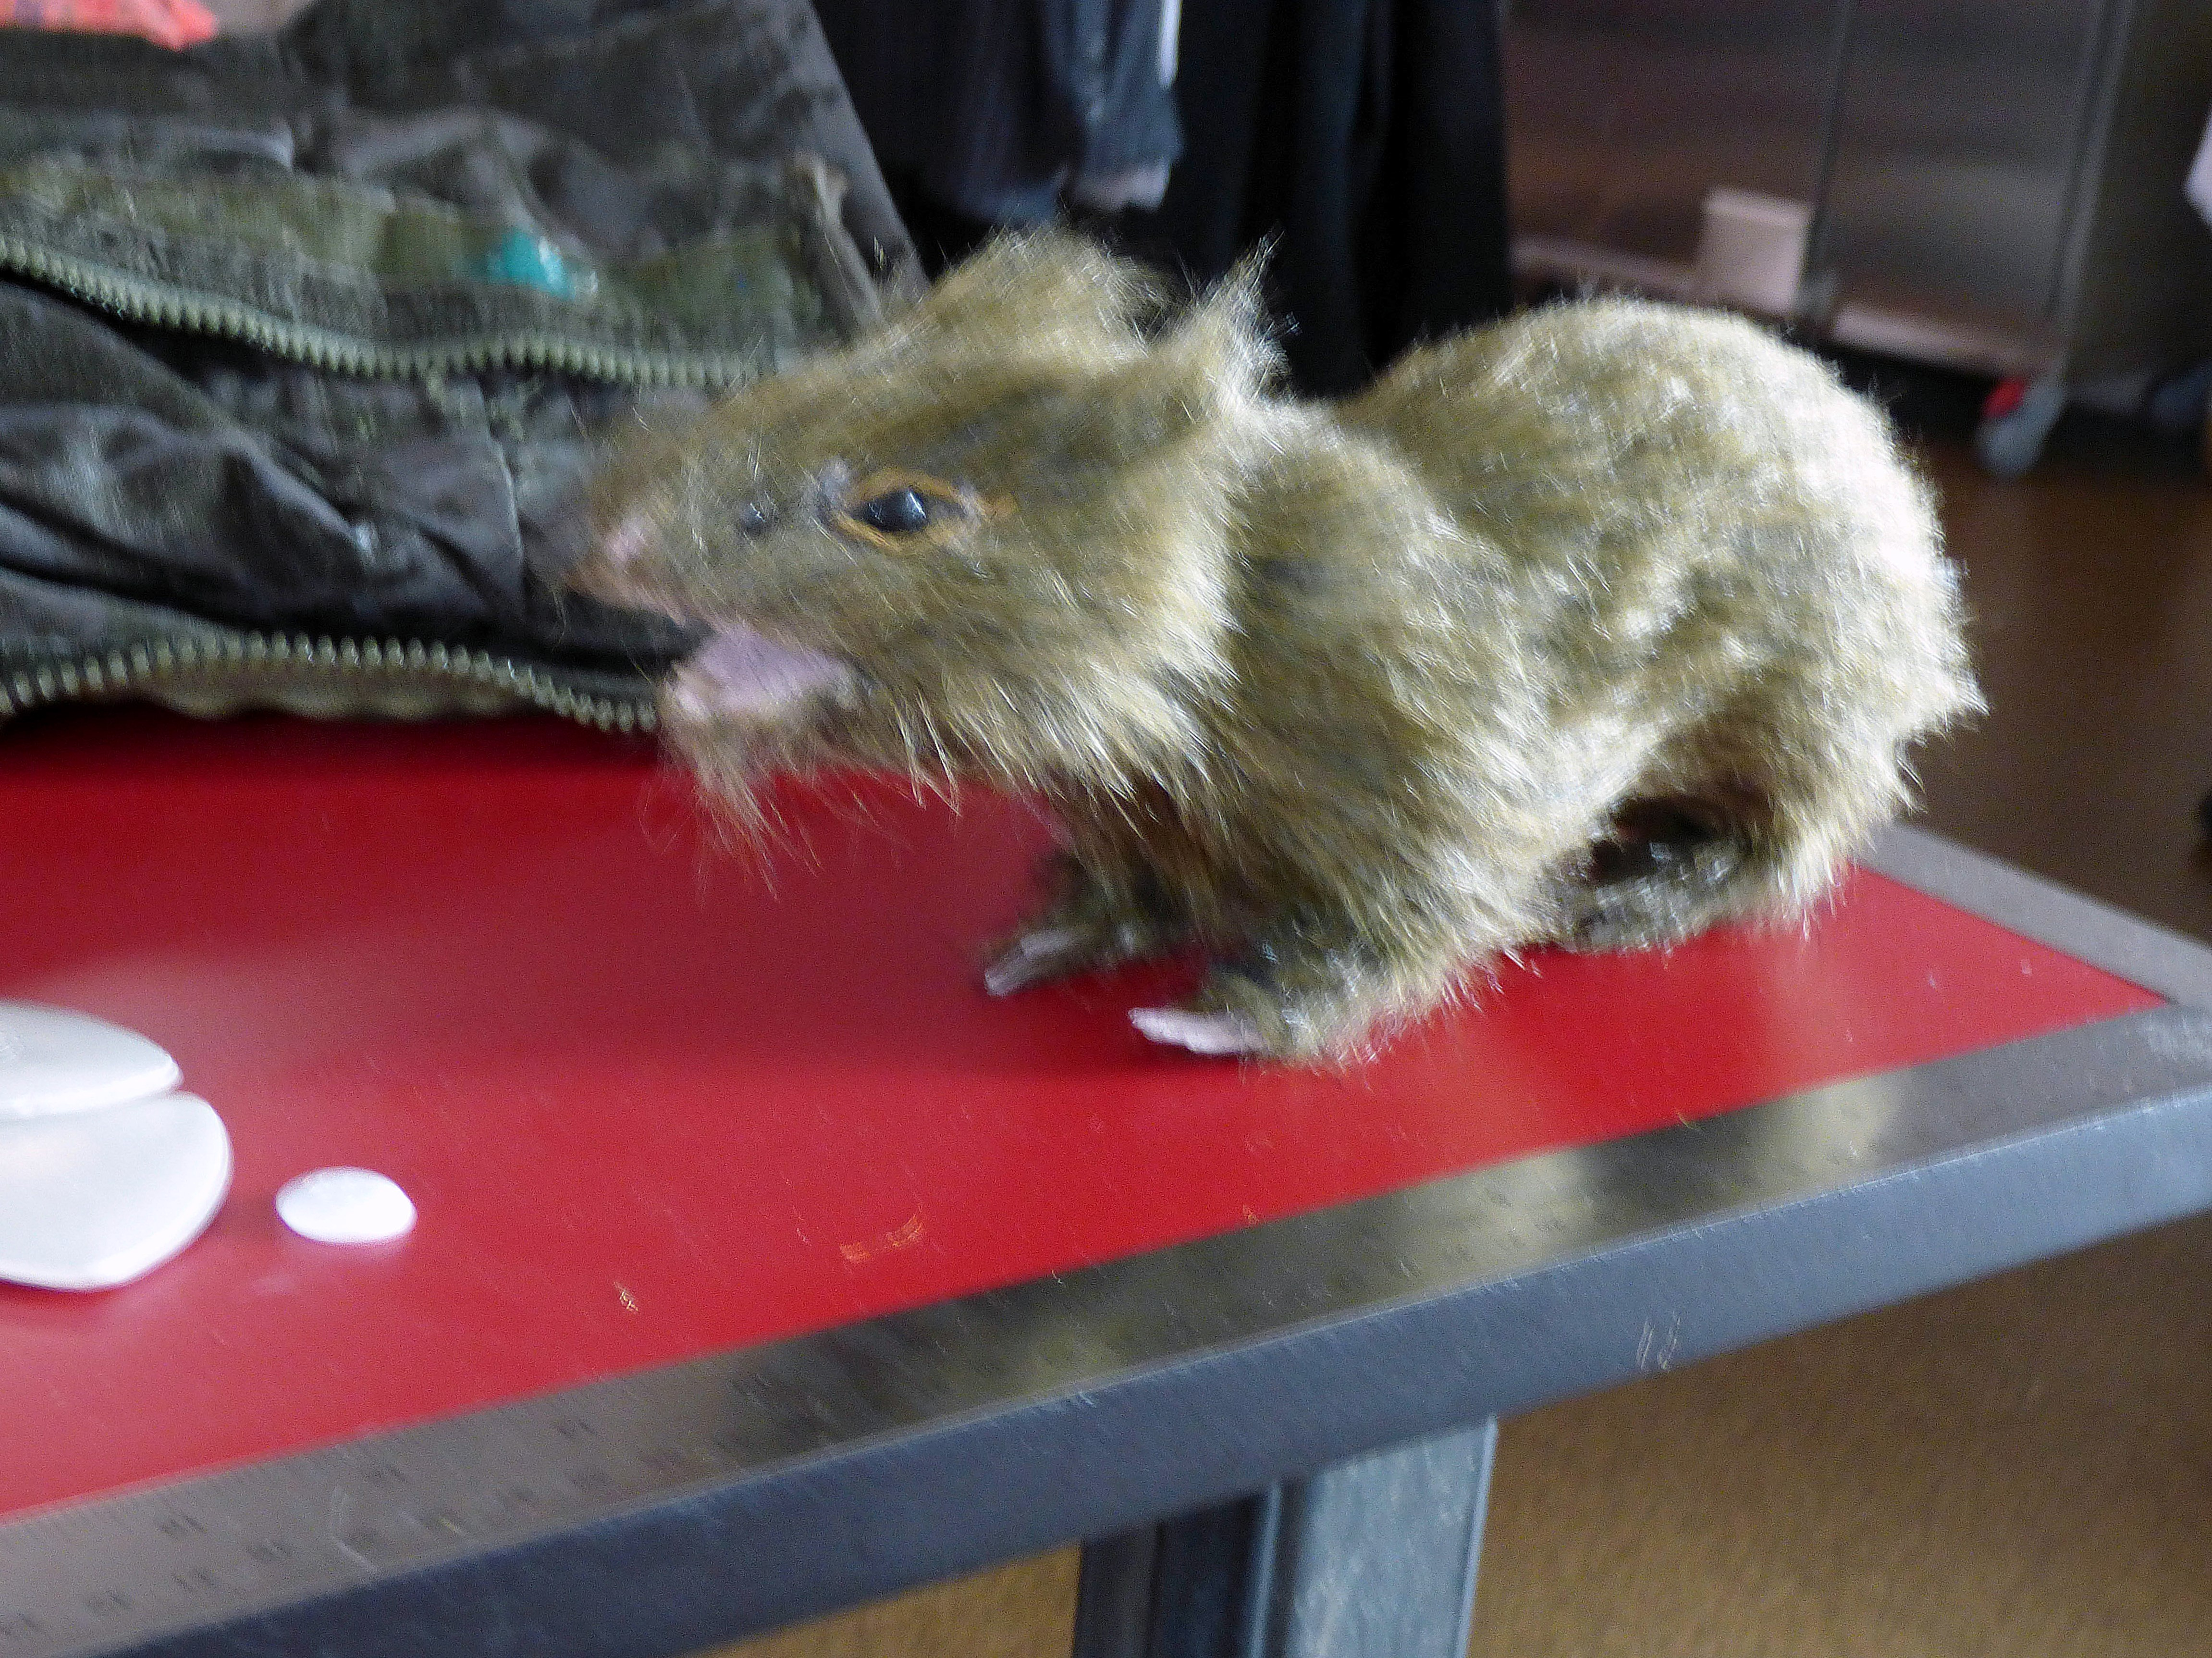 we also saw this rat inside the Costume Dept of Everyman Theatre, Liverpool, July 2016. He is a stuffed toy!